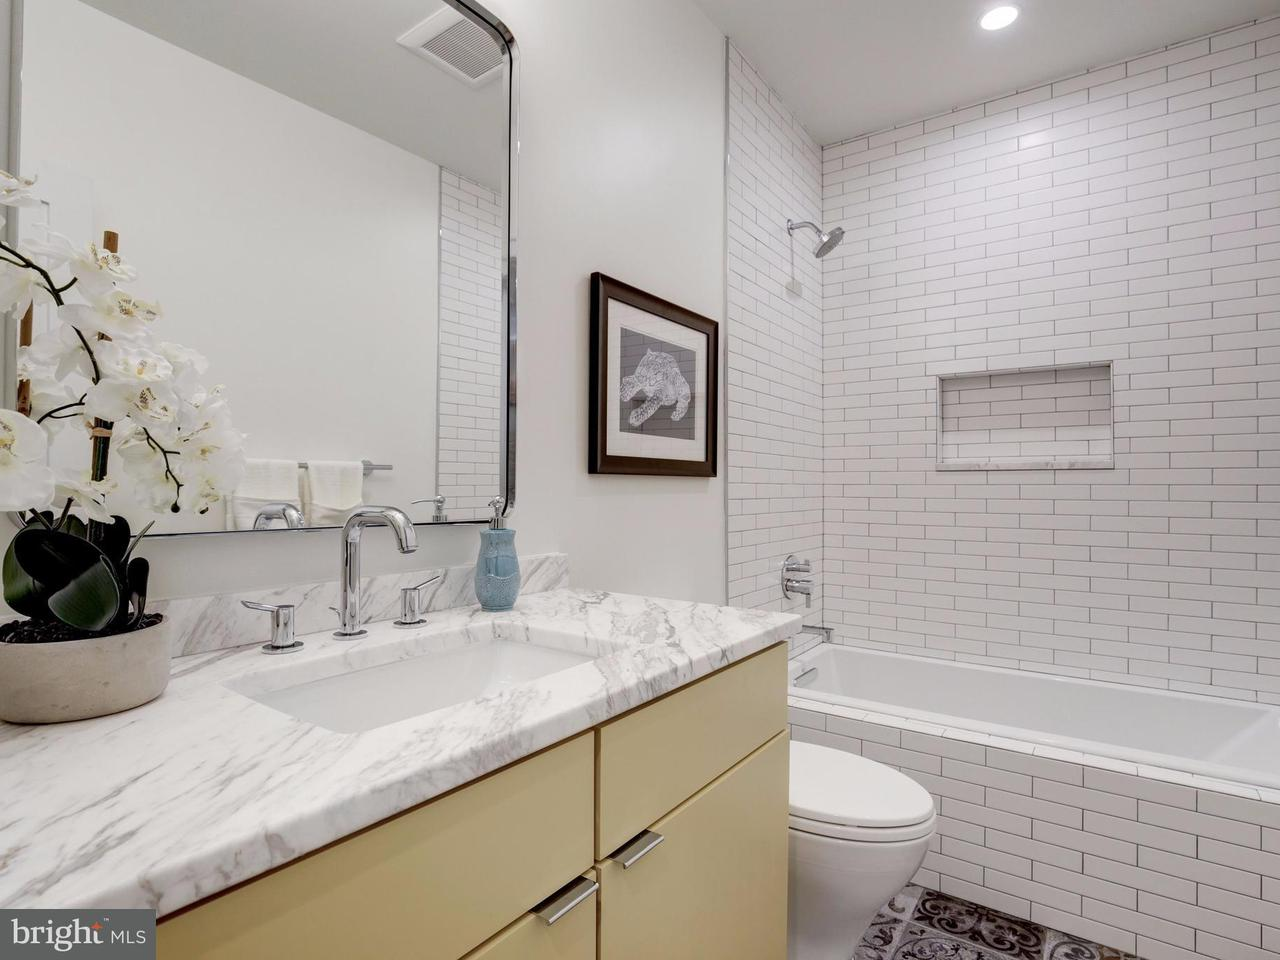 Additional photo for property listing at 1303 SPRING RD NW #1 1303 SPRING RD NW #1 华盛顿市, 哥伦比亚特区 20010 美国